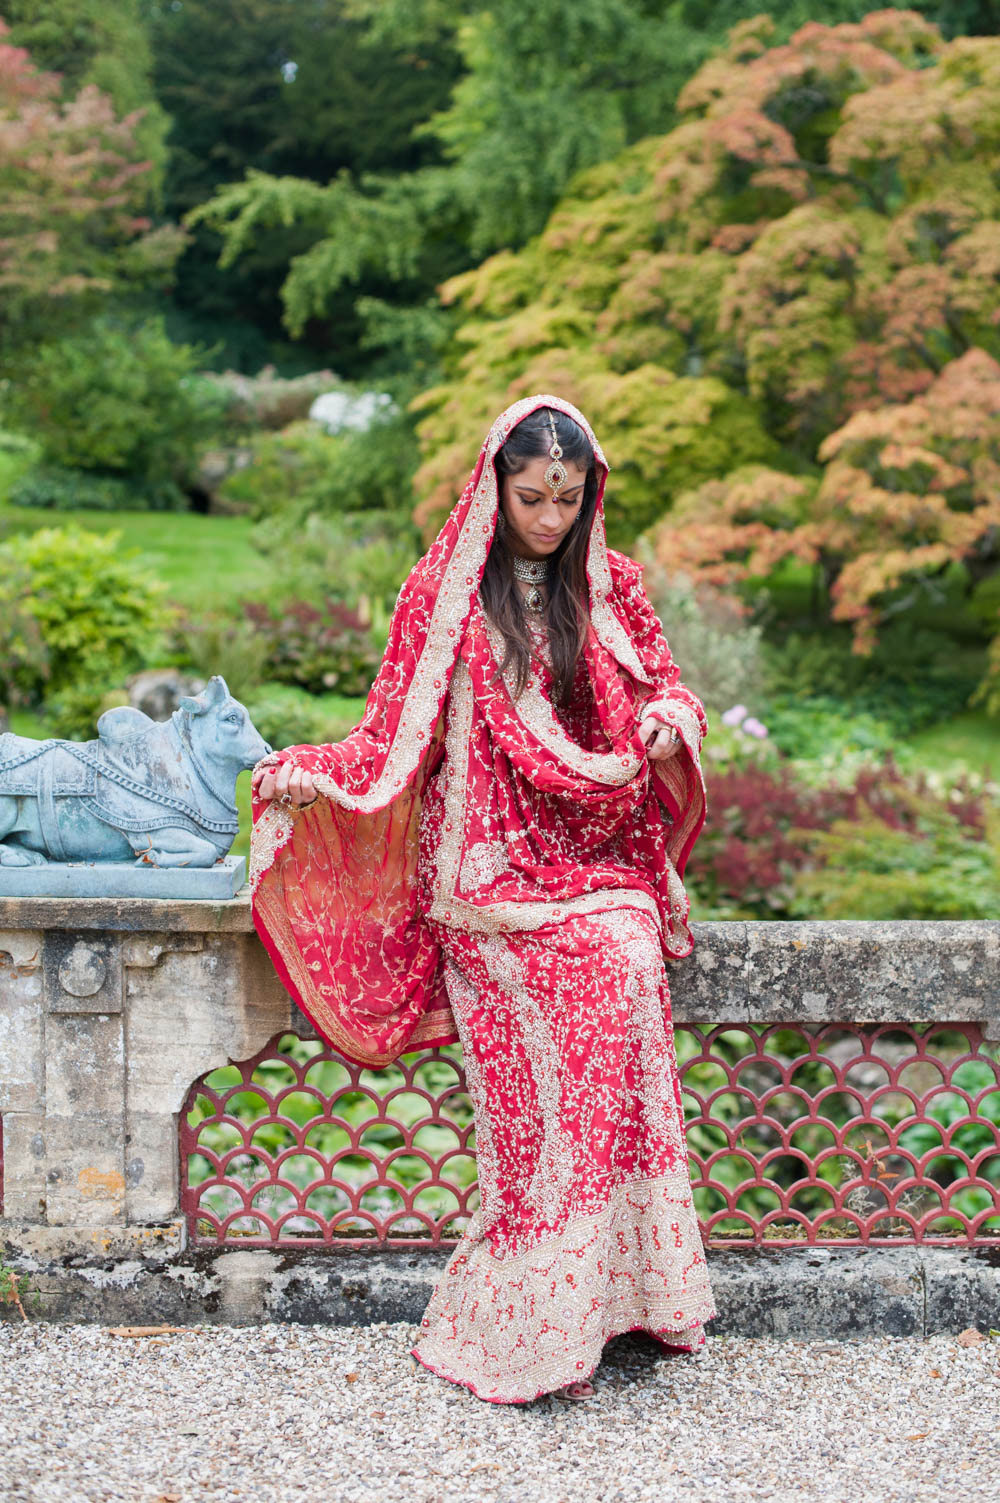 black rock hindu personals Meet british asian hindu singles welcome to our site, join us and meet thousands of asian hindu professionals over 15000 british hindu members.